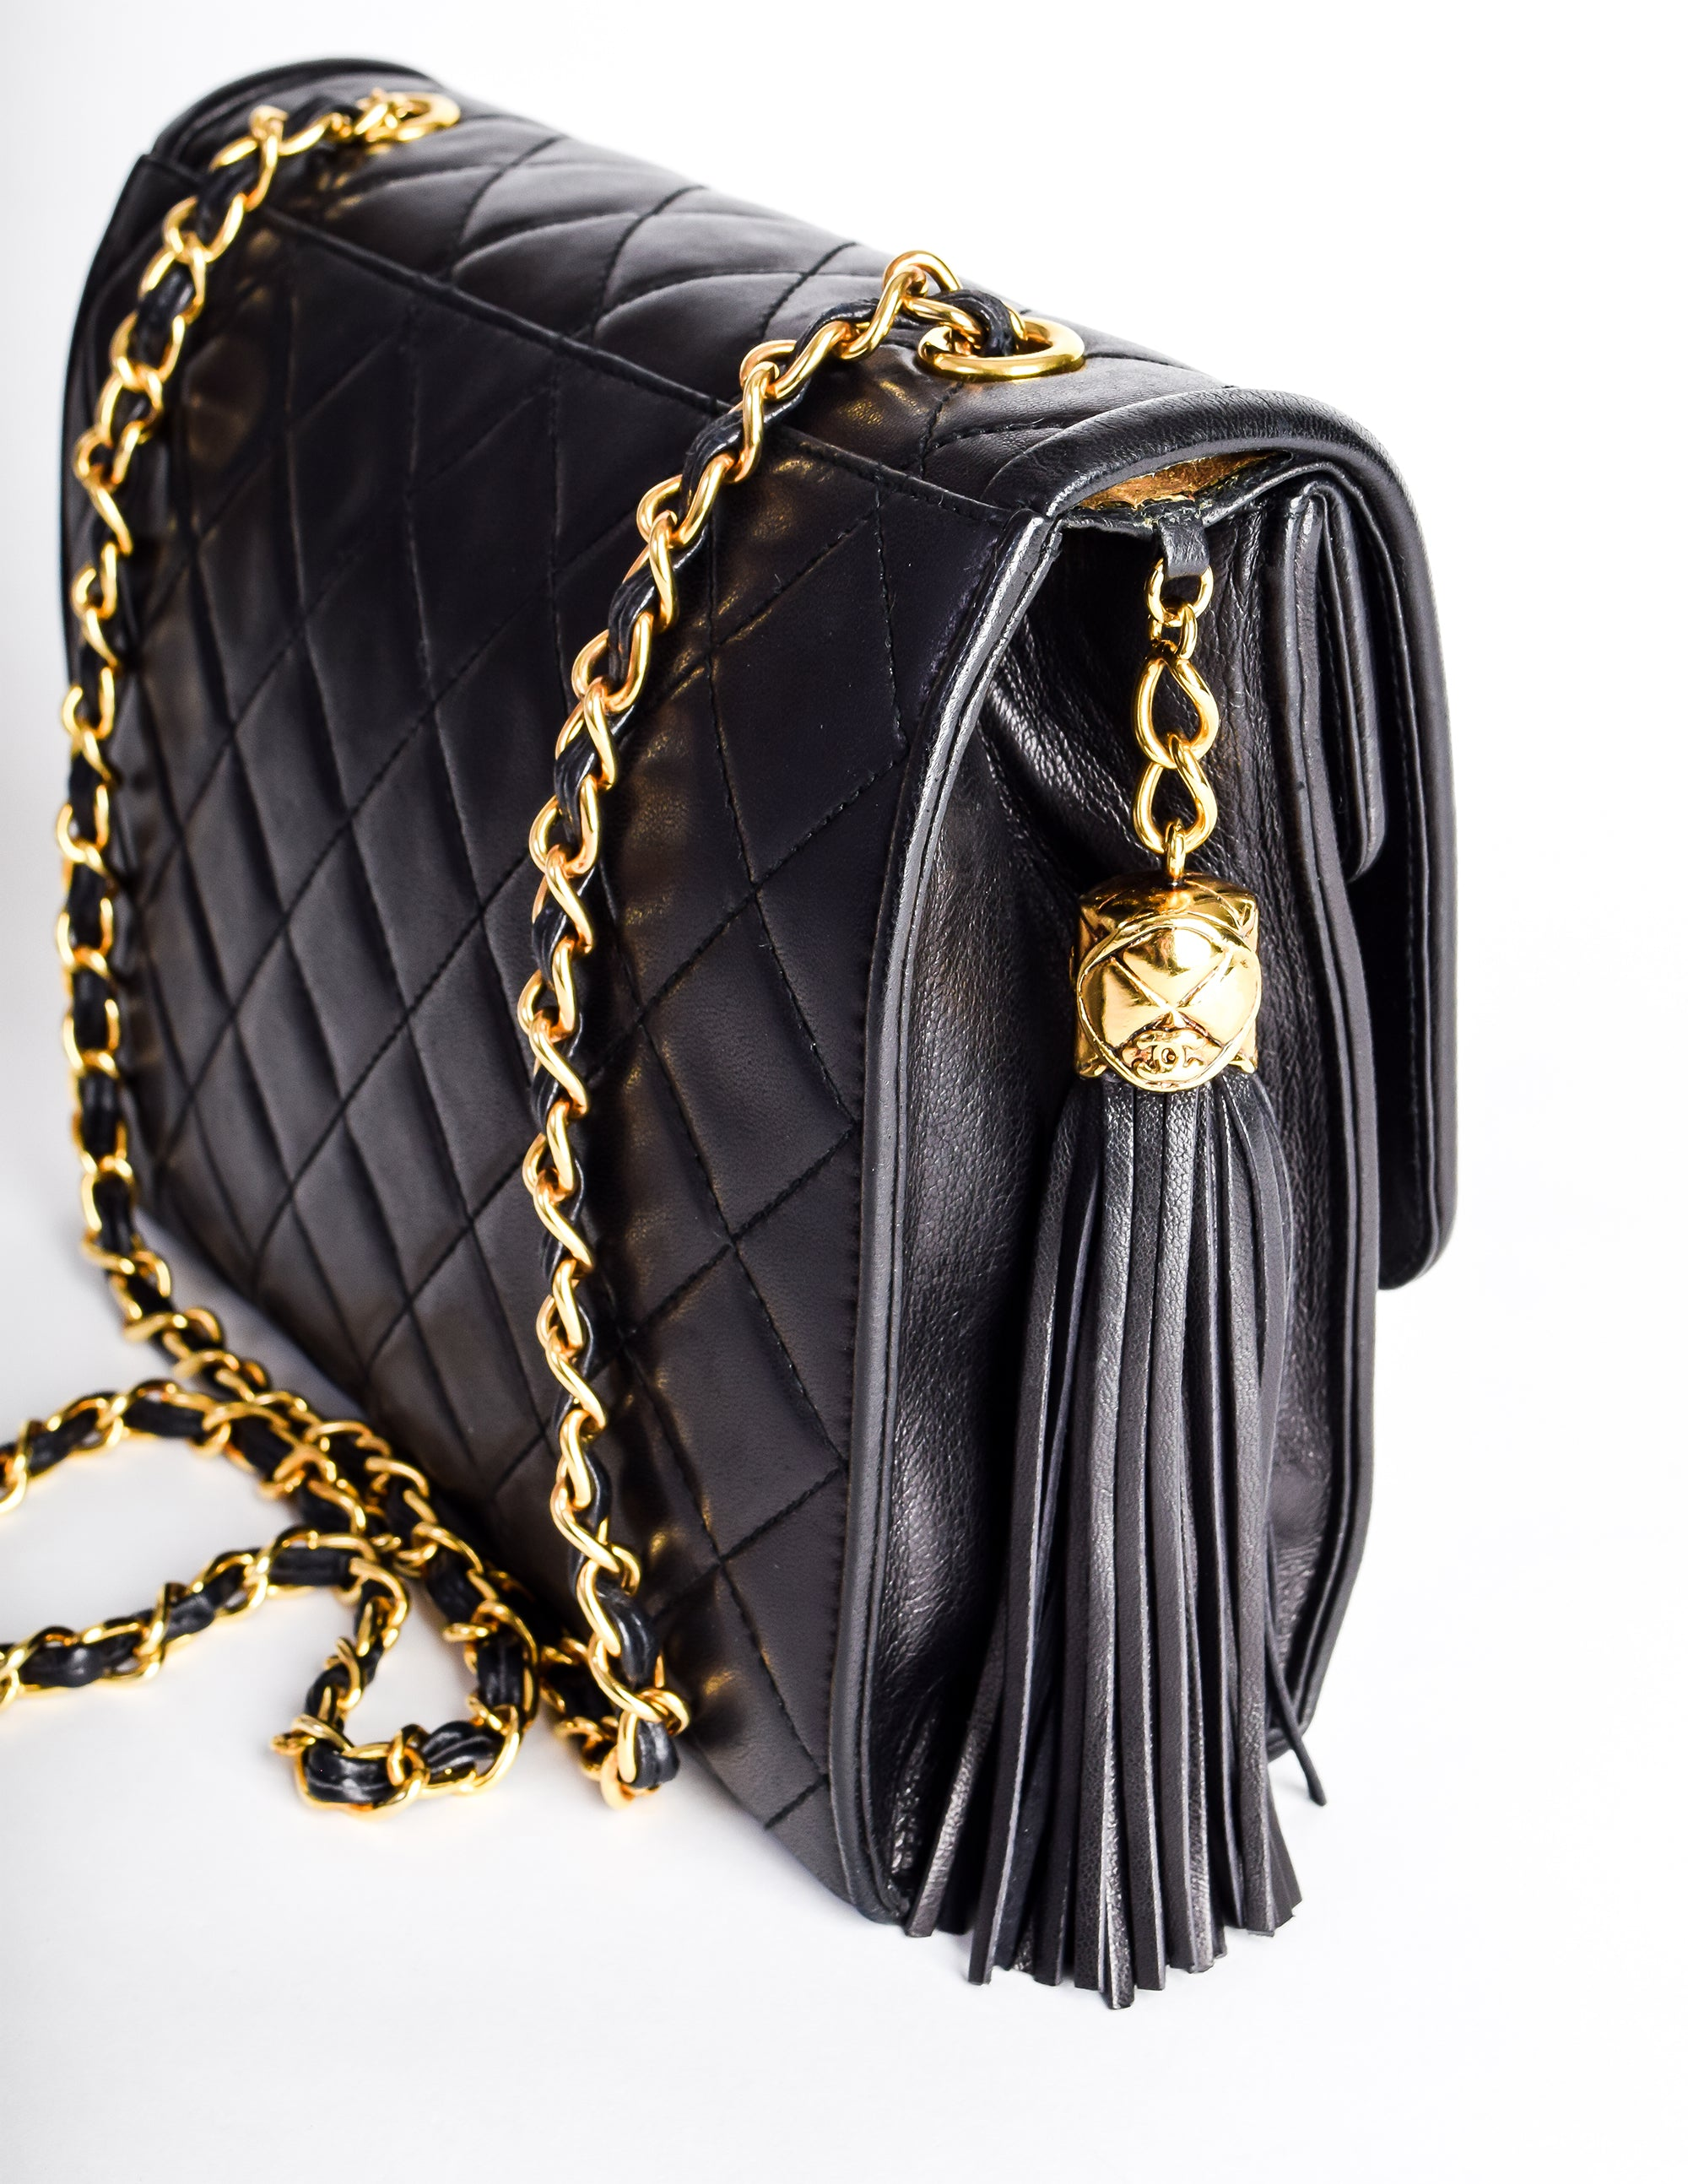 a0e7d4d8914 Chanel Vintage Black Quilted Lambskin Crossover Double Flap Tassel Bag